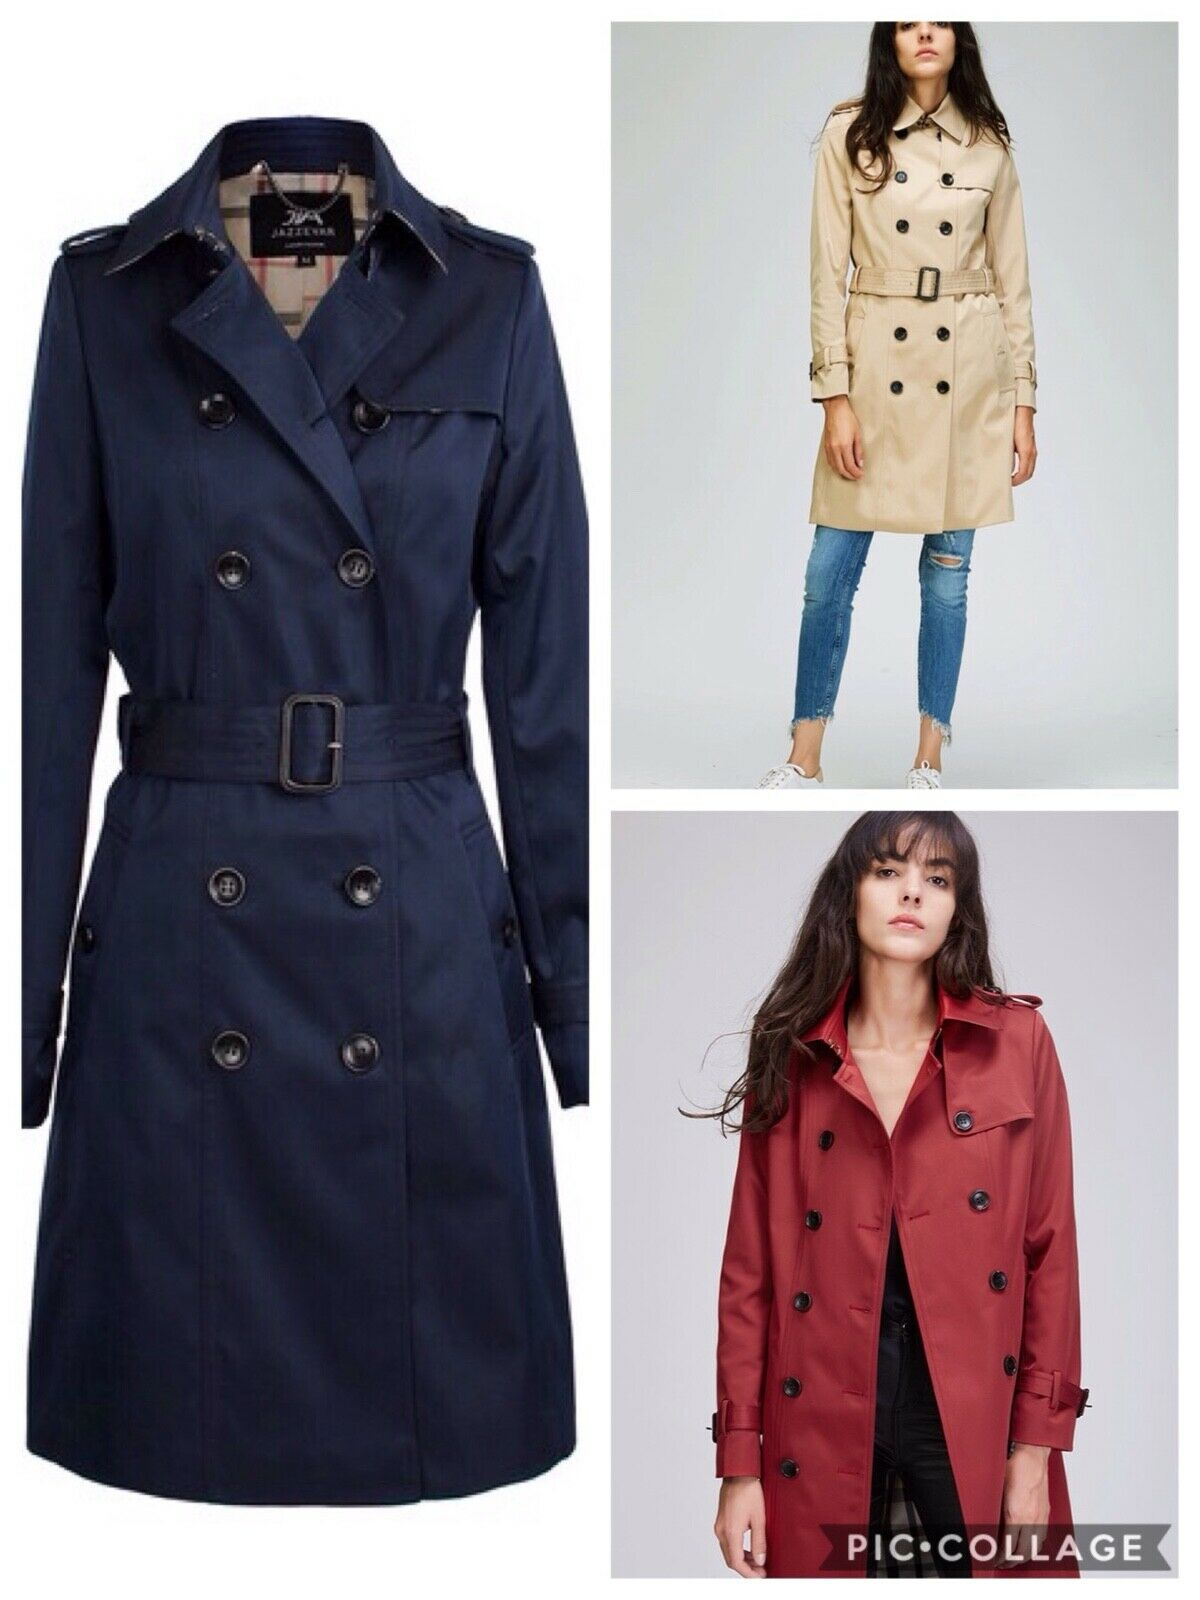 WOMENS WATERPROOF CLASSIC DOUBLE BREASTED TRENCH COAT DRESSY CASUAL 3 COLORS S-L